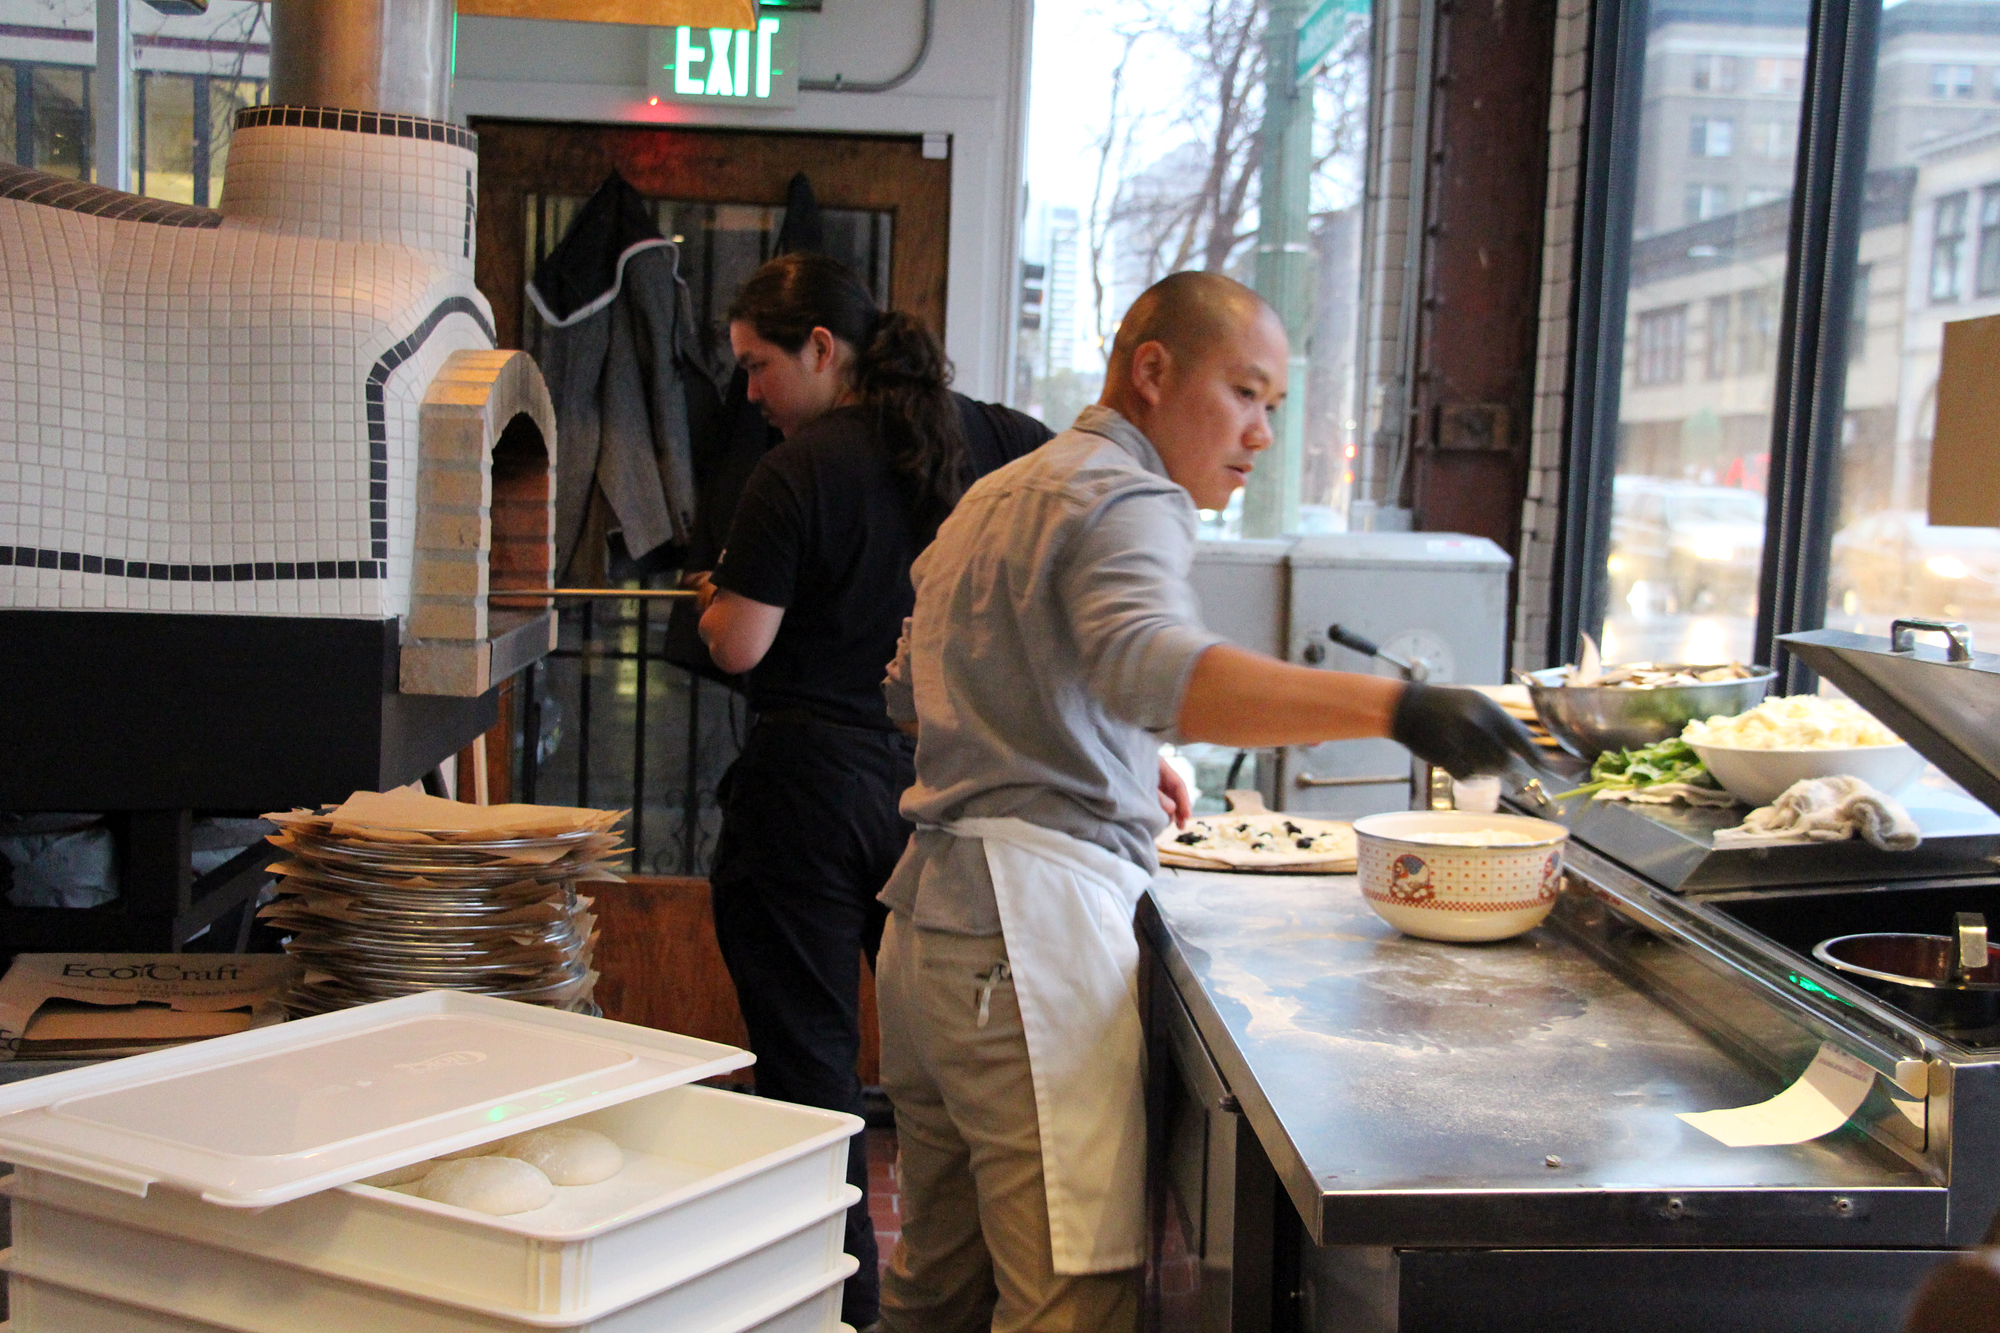 Making pizza in the open kitchen at Bare Knuckle.